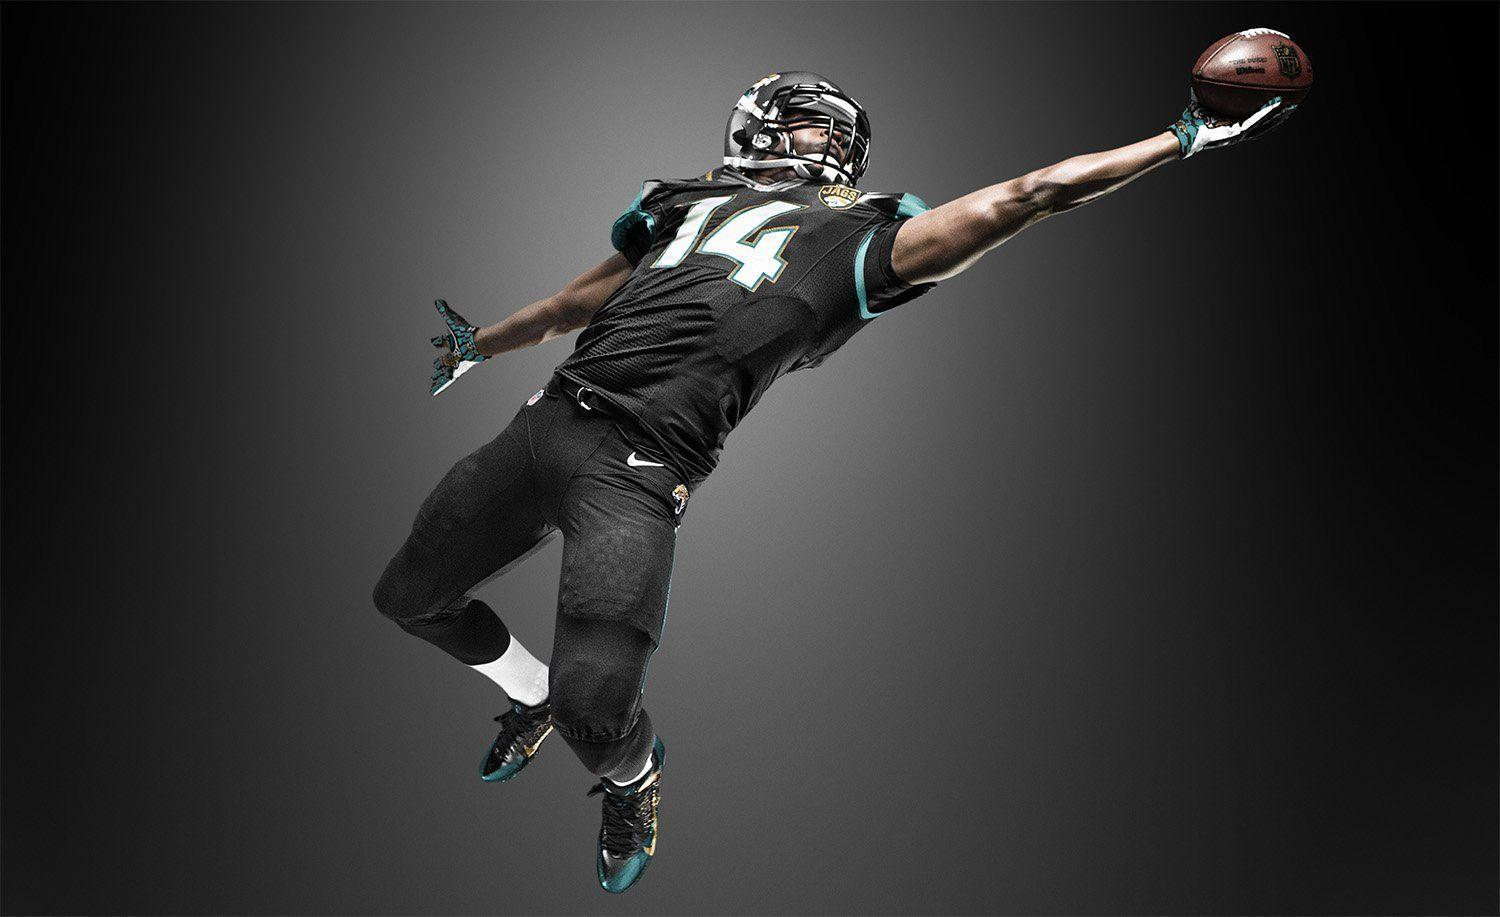 Nike Wallpapers Football 1500x917